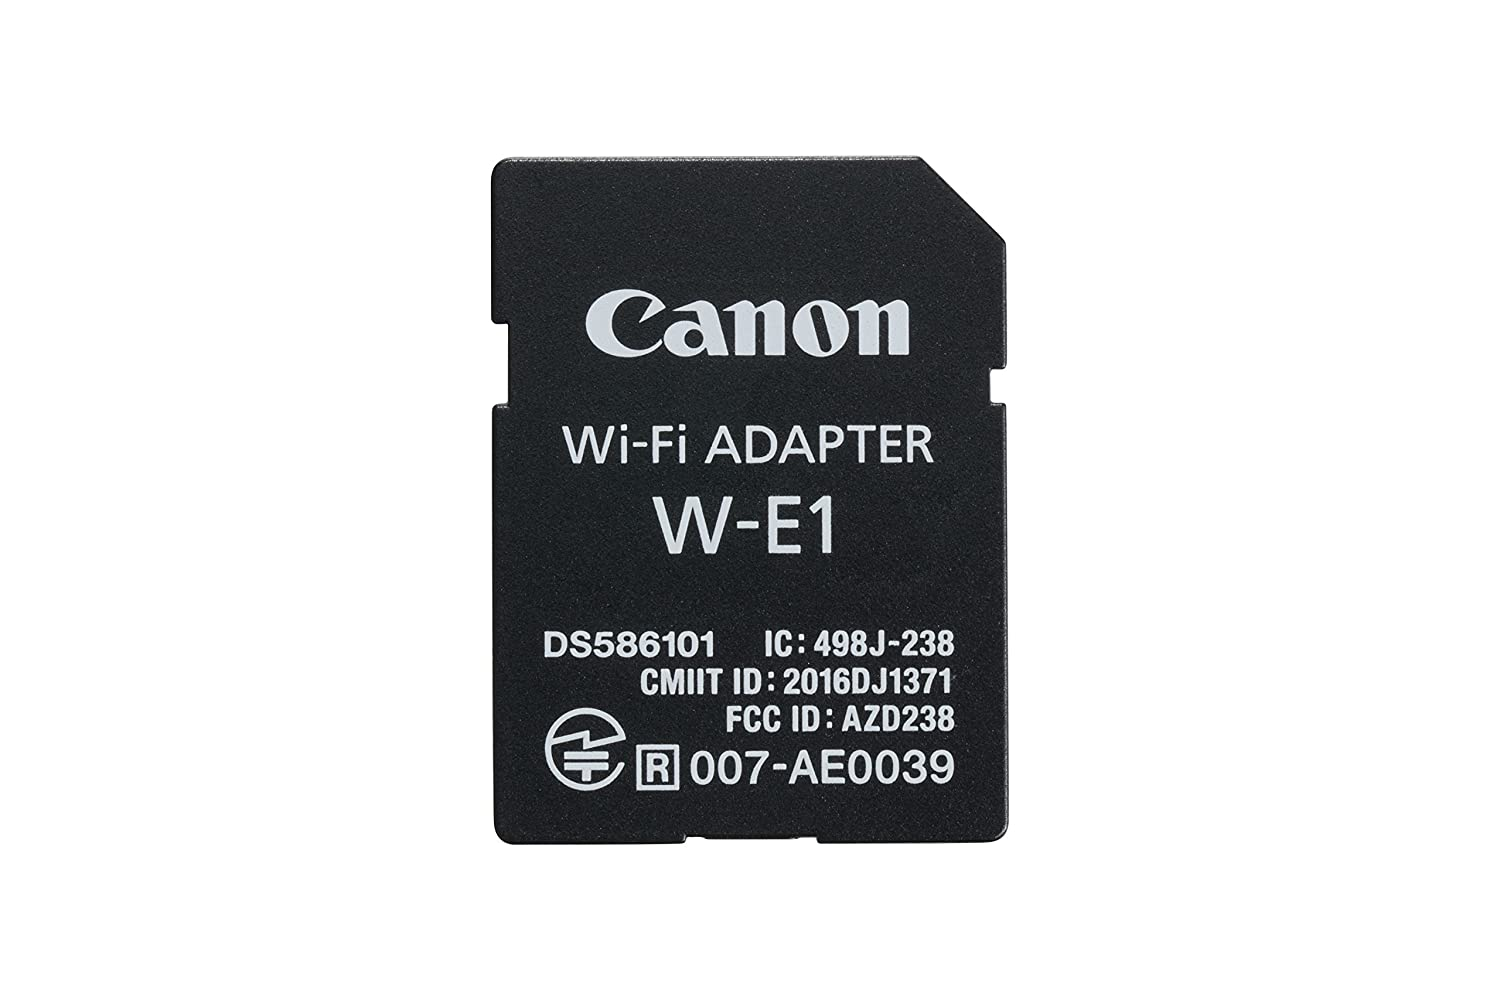 Canon Wi-Fi Wifi Adapter W-E1 Shipping from Japan